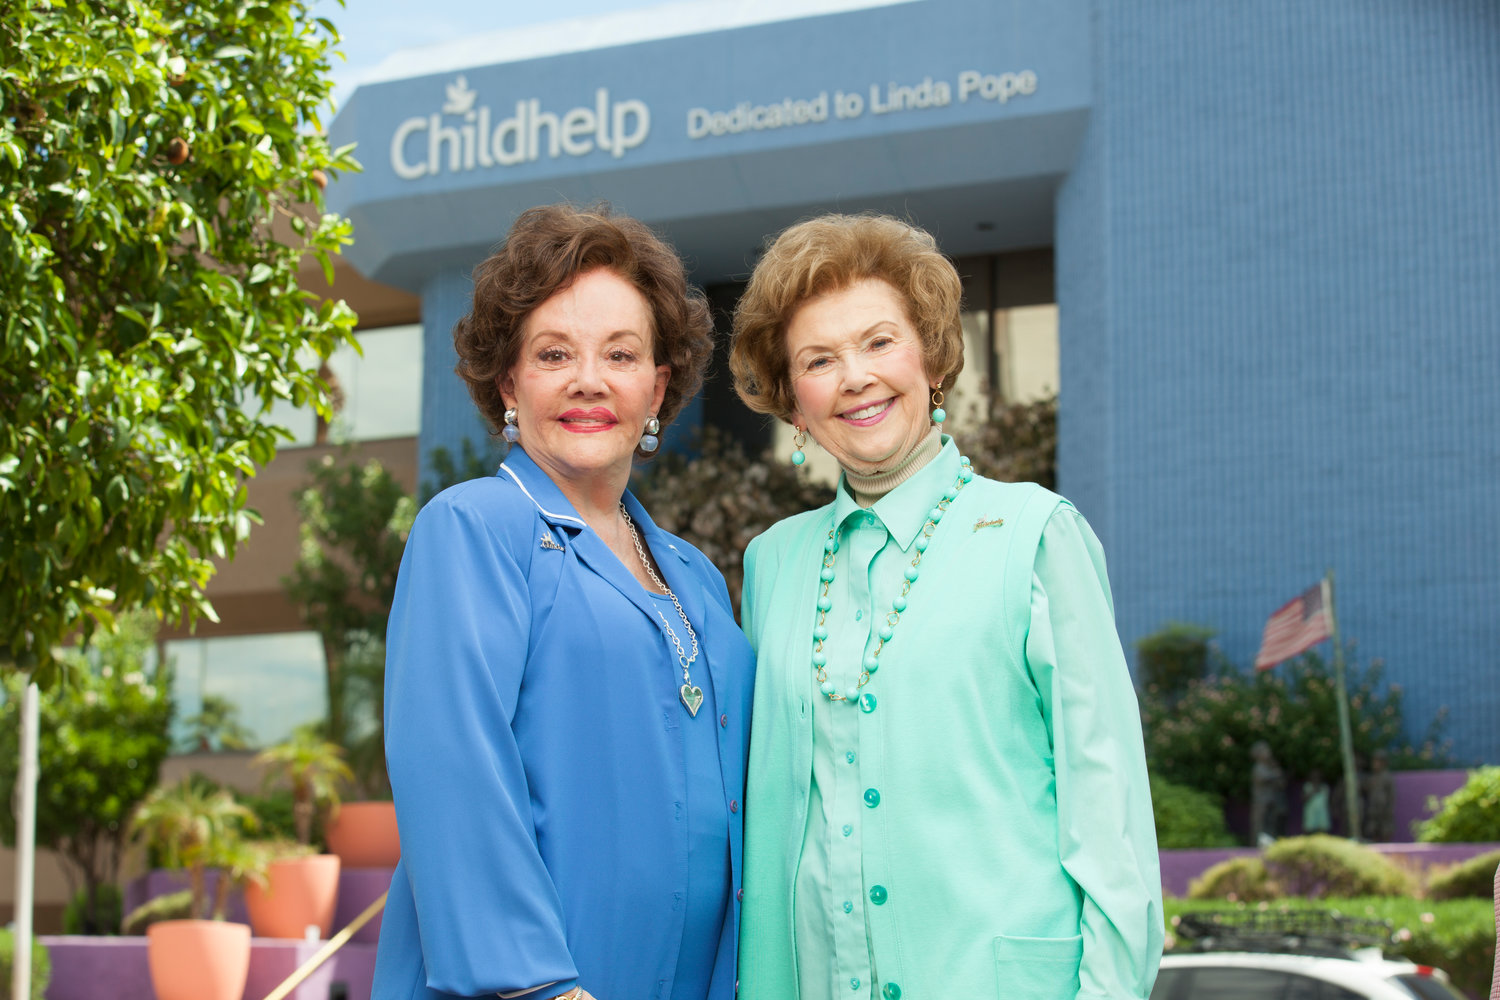 ChildHelp founders Sara O'Meara and Yvonne Fedderson